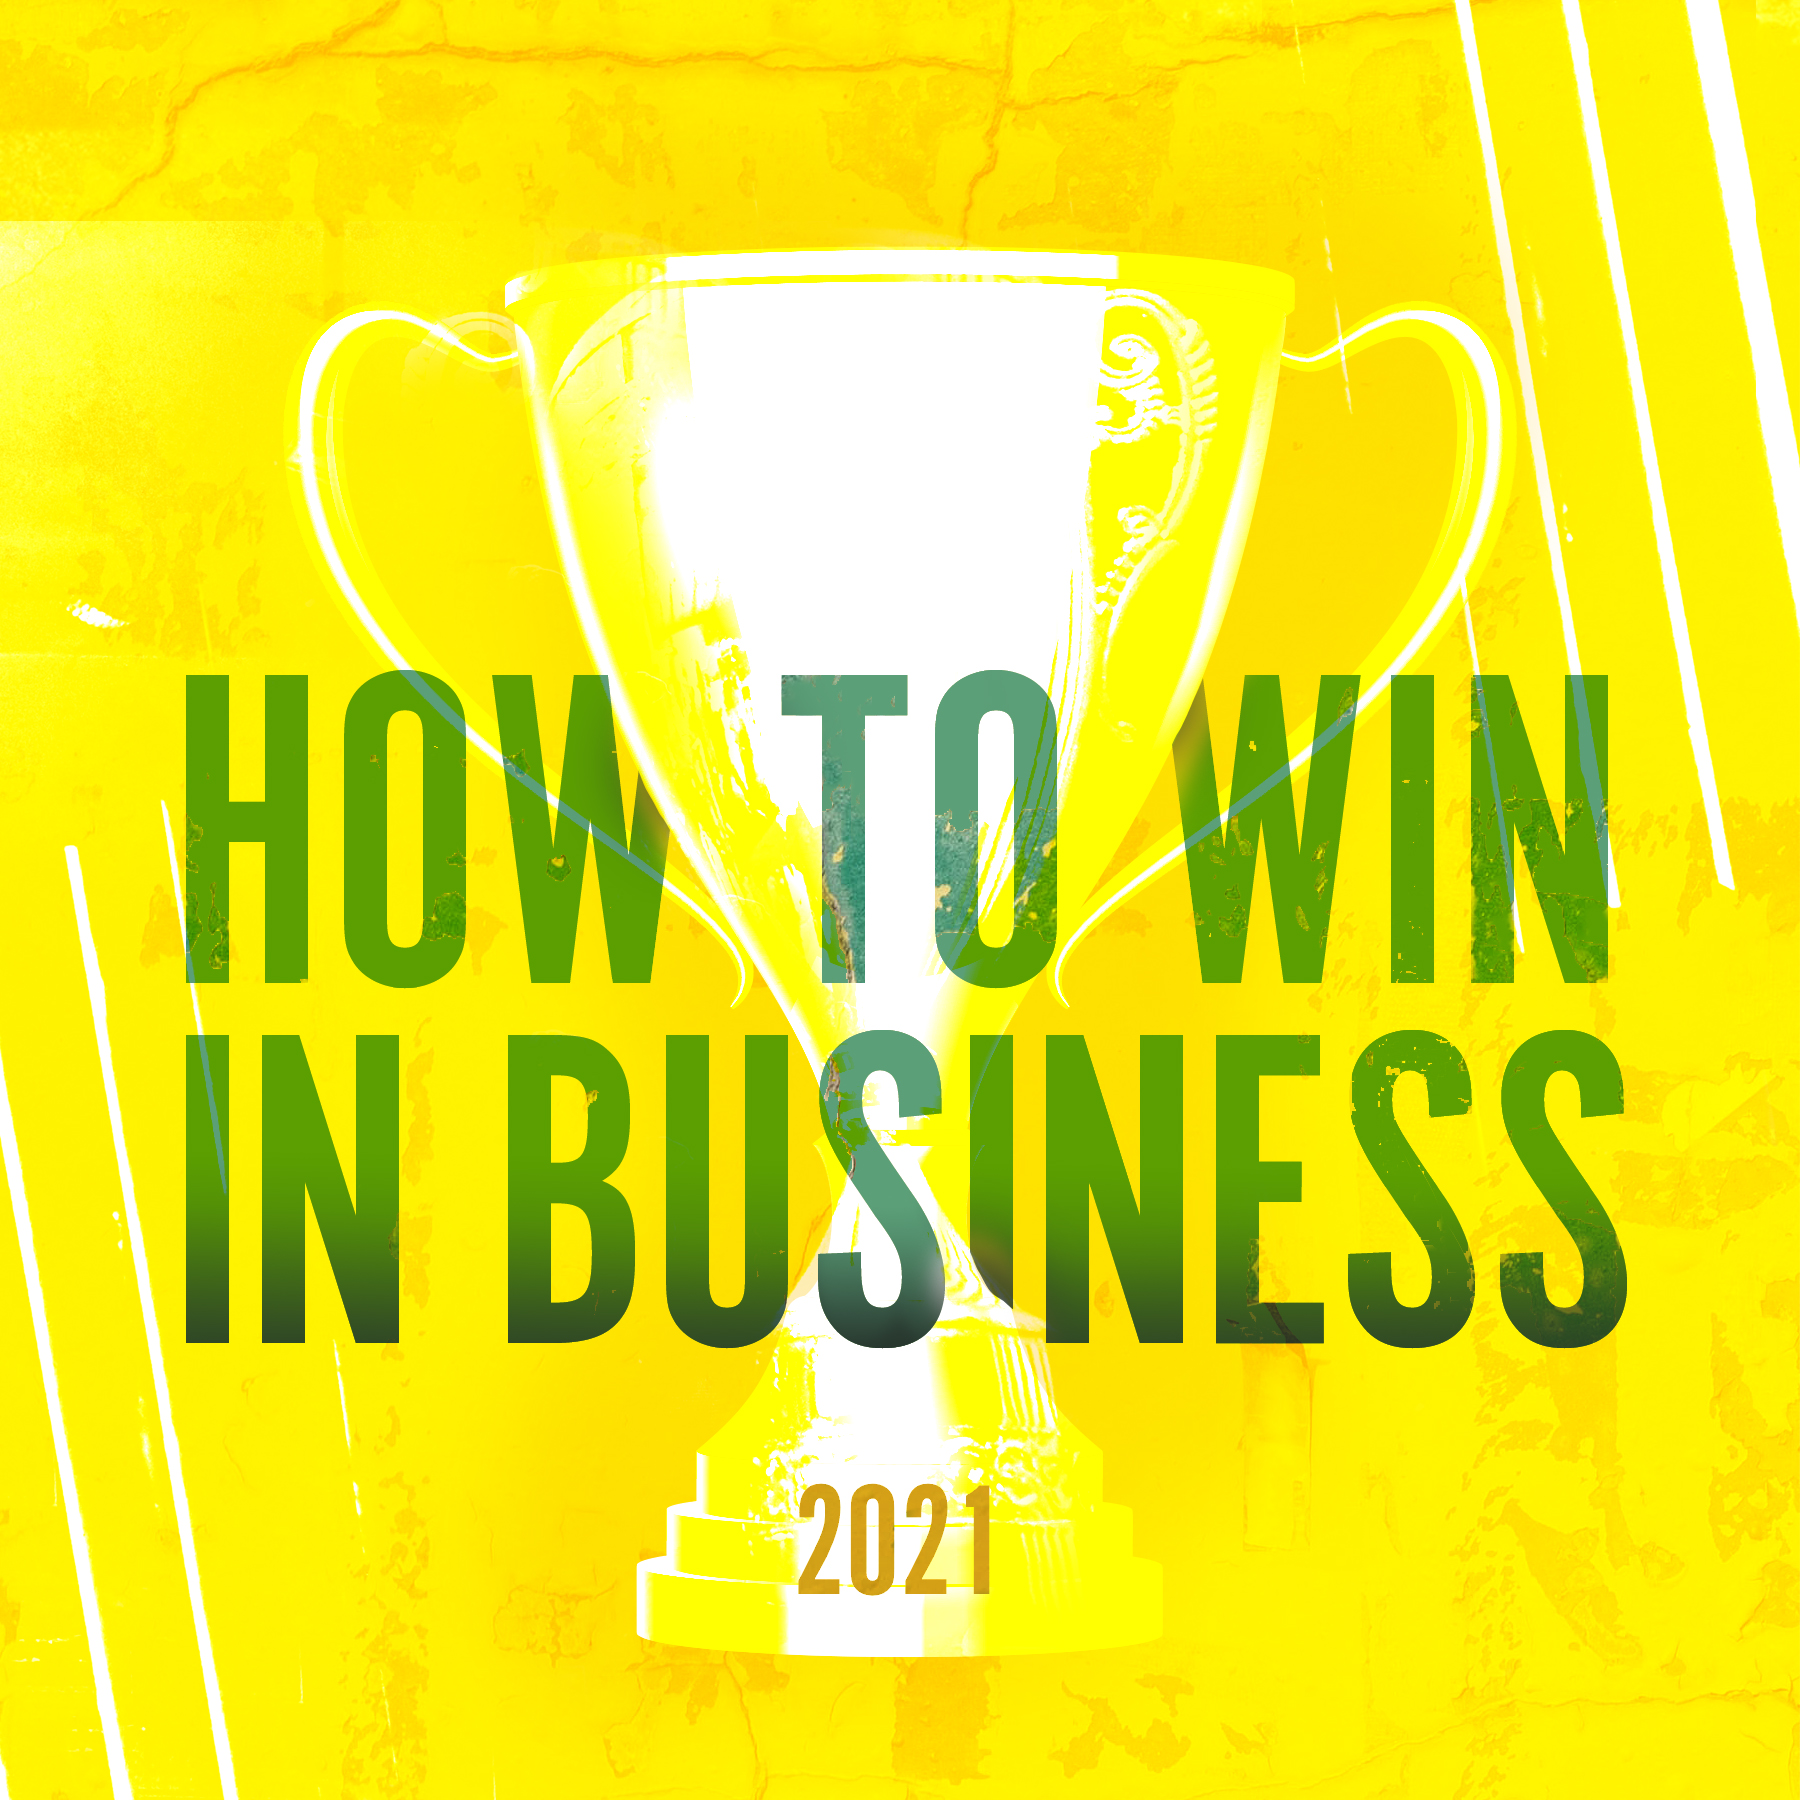 Featured Image: How to Win in Business in 2021